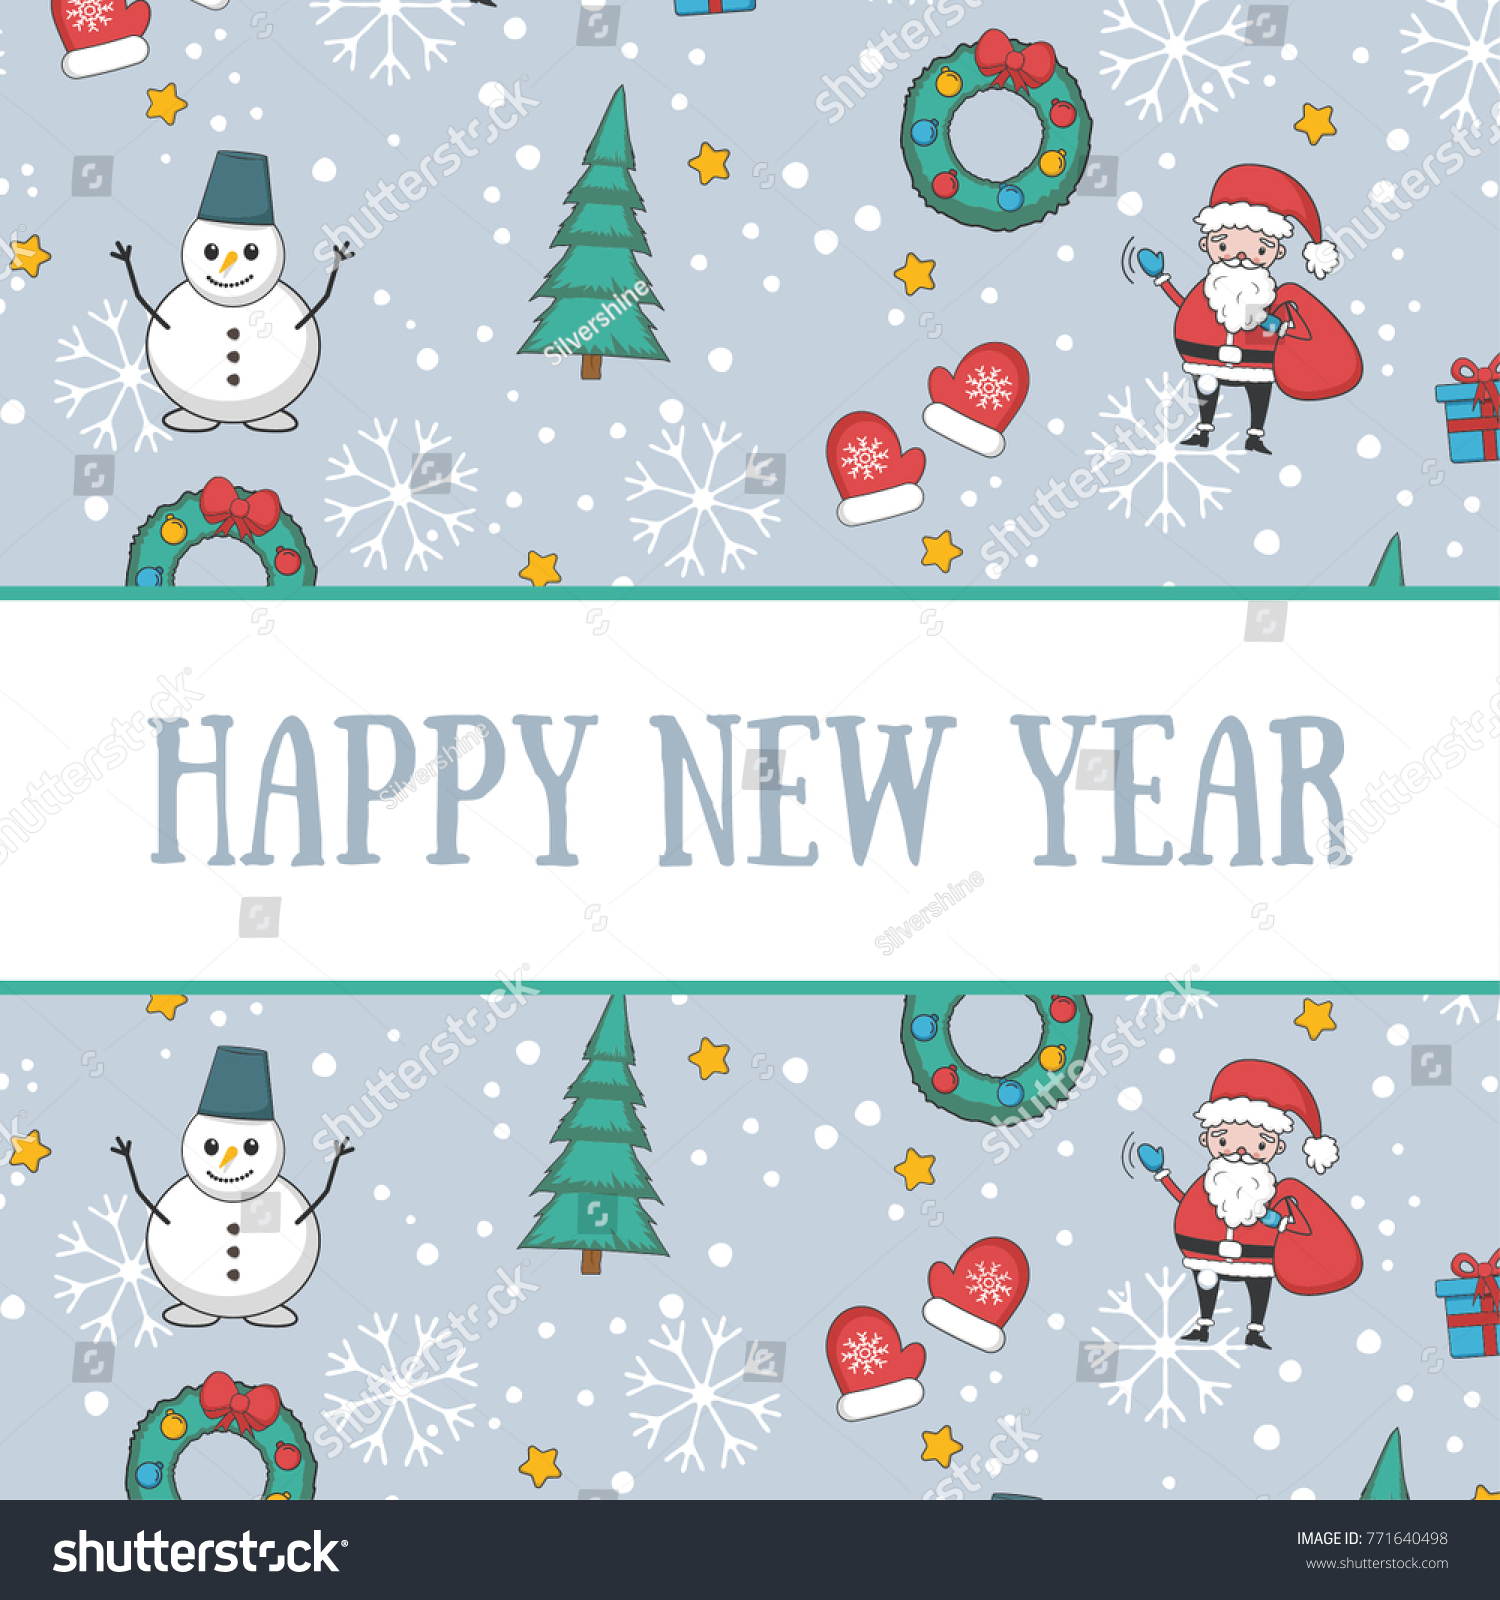 Merry Christmas and Happy New Year postcard | EZ Canvas